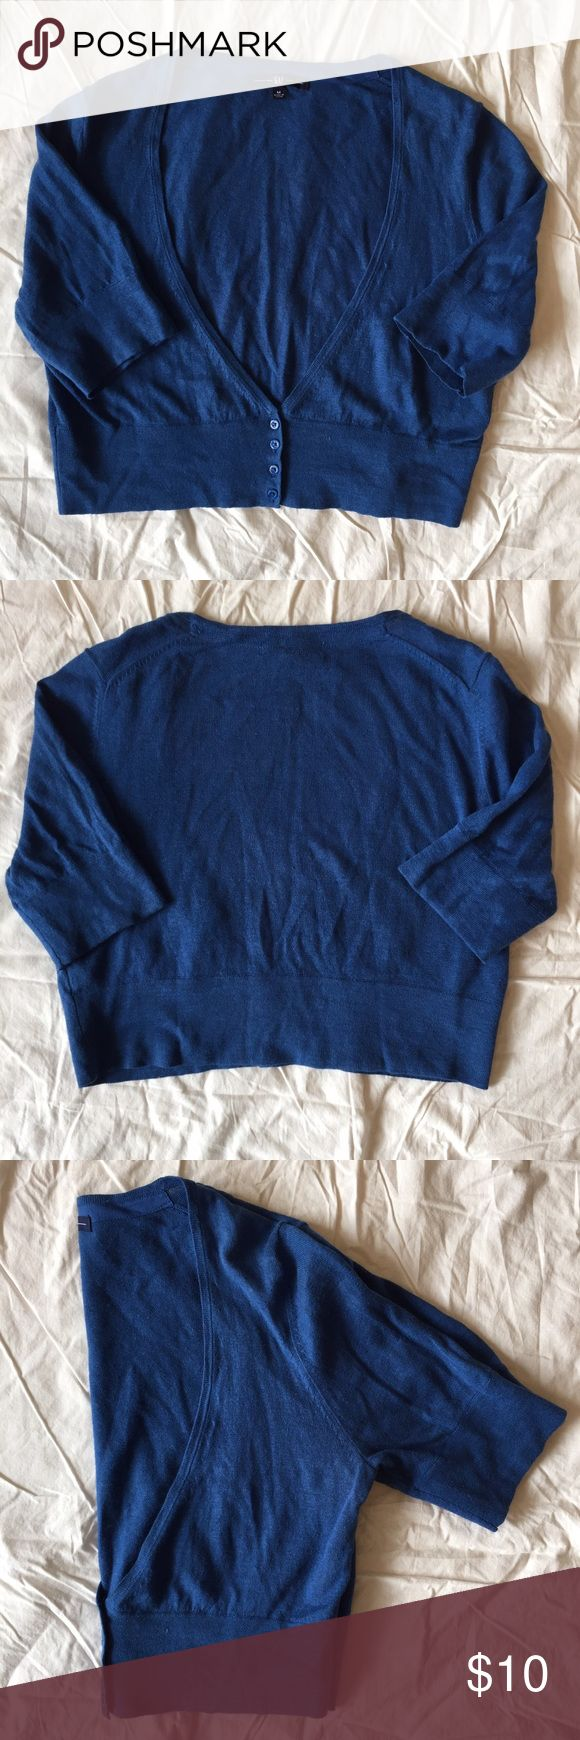 .GAP. Royal blue cropped cardigan GAP royal blue cardigan, EUC with short sleeves. Cropped, sitting at about the waist. V-neck. Size M. Pair this with a cute skirt for work or a cami and jeans for home. GAP Sweaters Cardigans